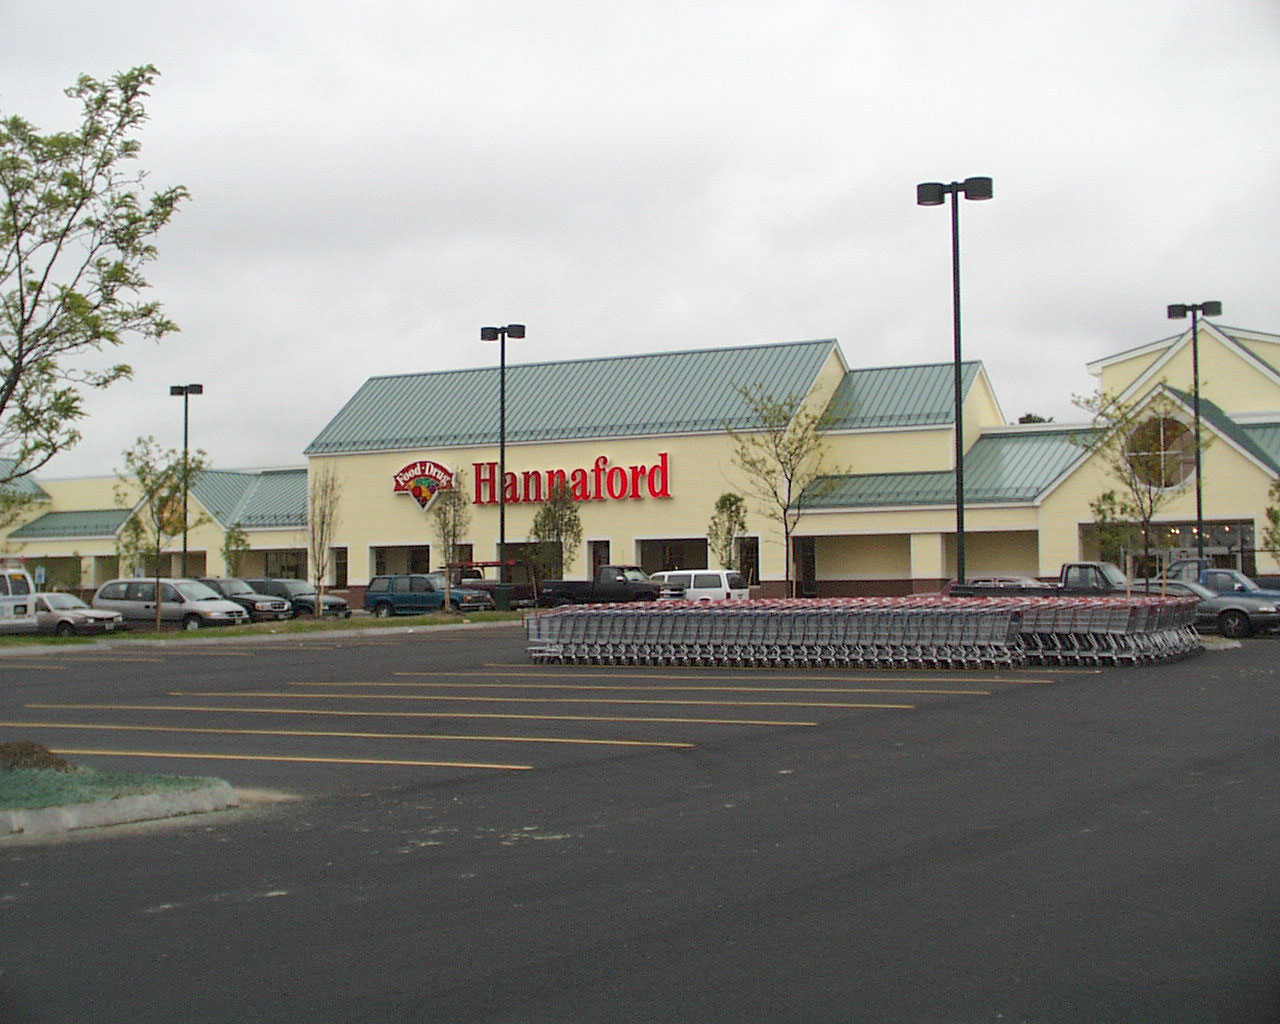 Sep 05, · The Hannaford App lets you earn and manage My Hannaford Rewards and clip and redeem coupons right from your phone. Sign in and update your existing Hannaford account or create a new account with a personalized profile in the app to get started/5().